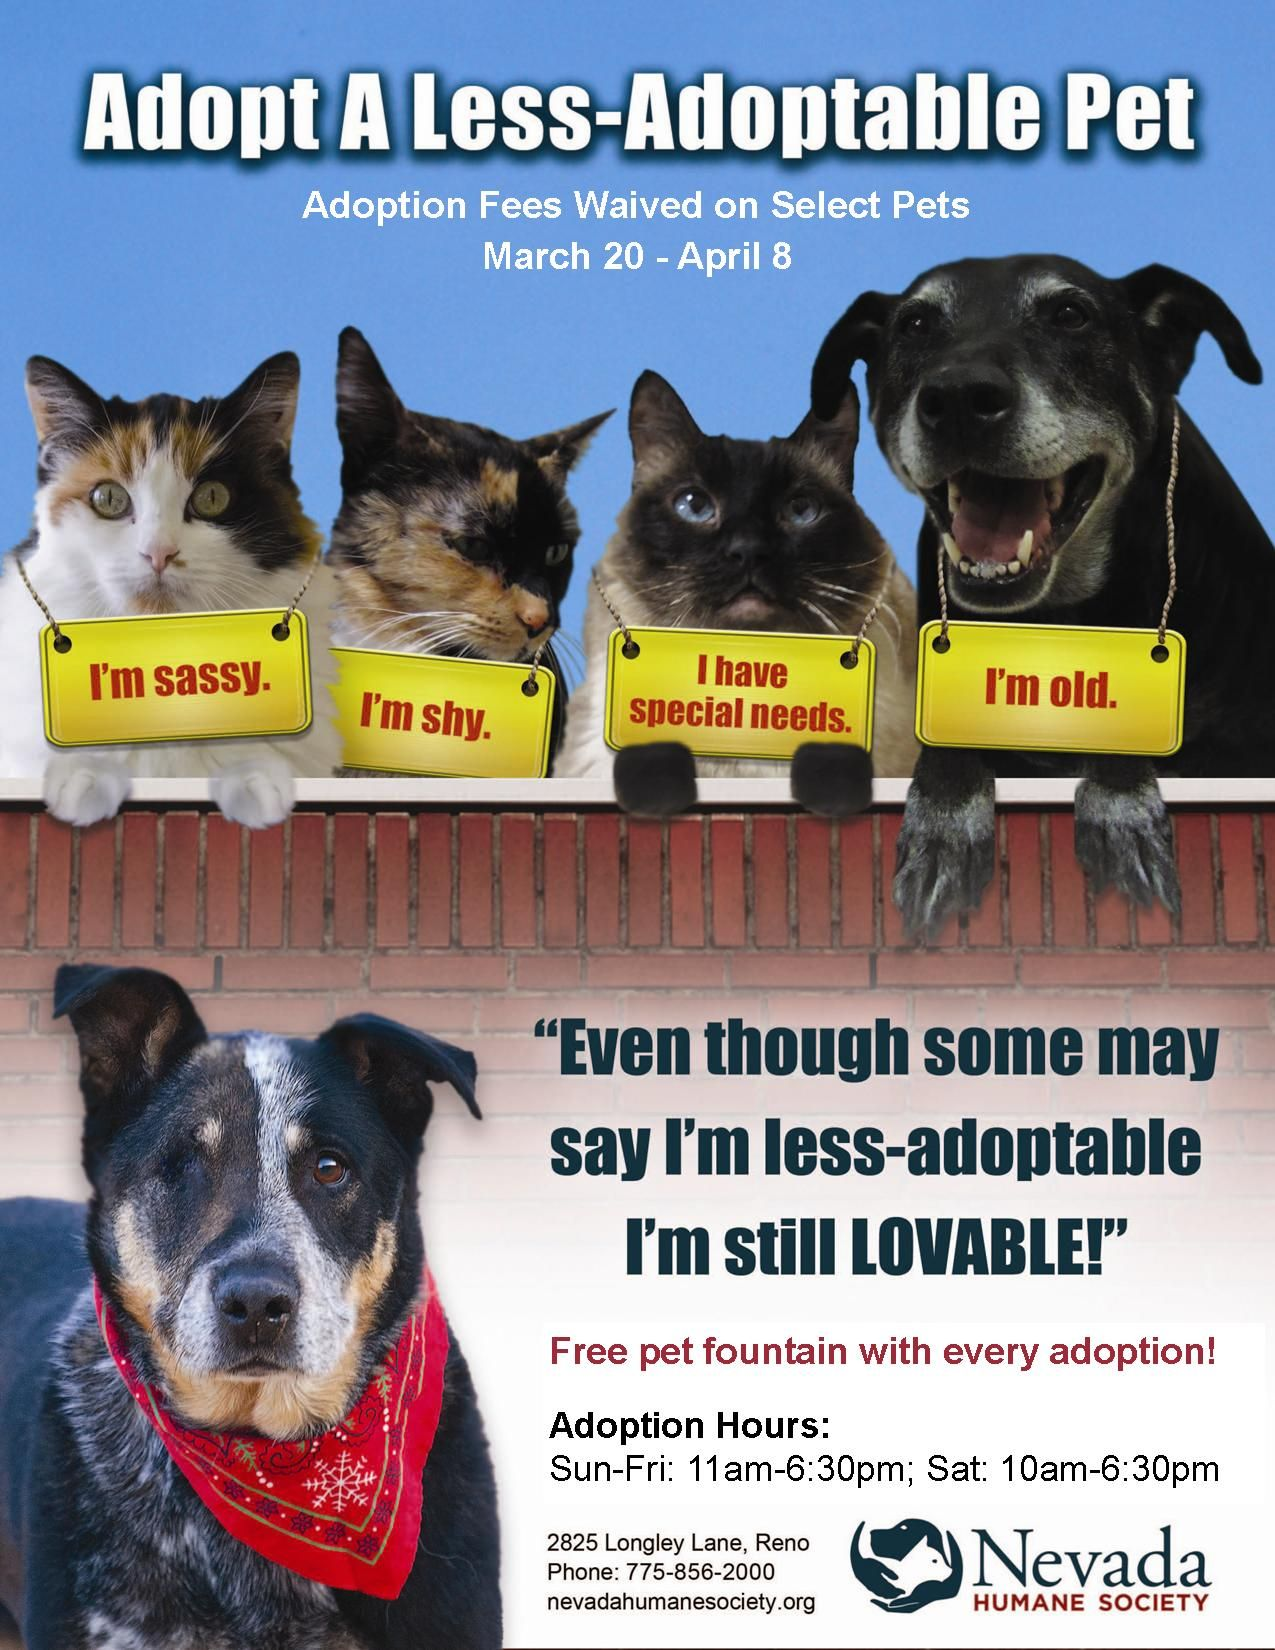 We Love All Pets The Nhs Less Adoptable Adoption Promotion March 20 April 8 2012 Pet Adoption Adoption Animal Free